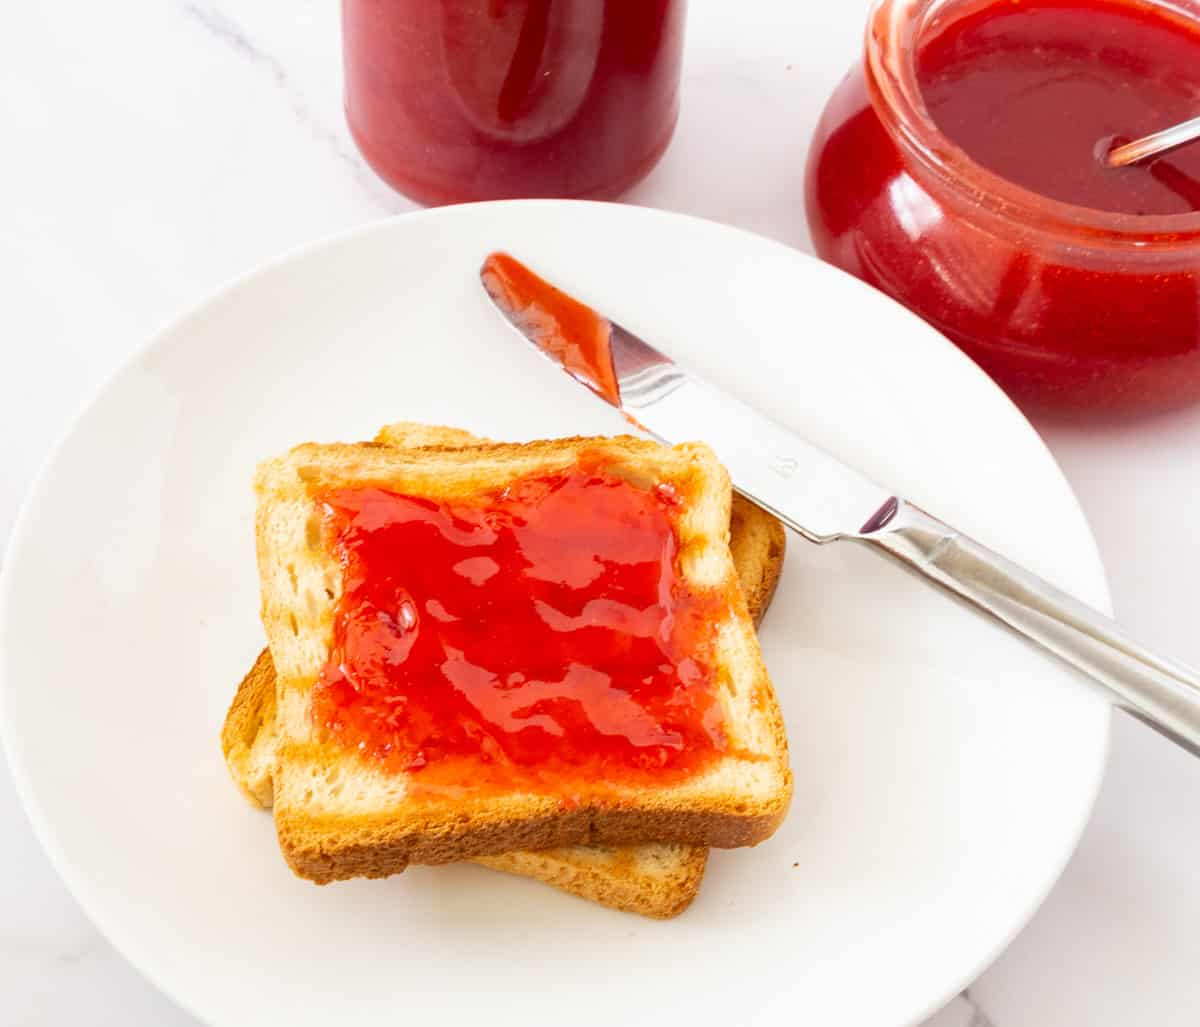 A slice of toast with jelly on a plate.